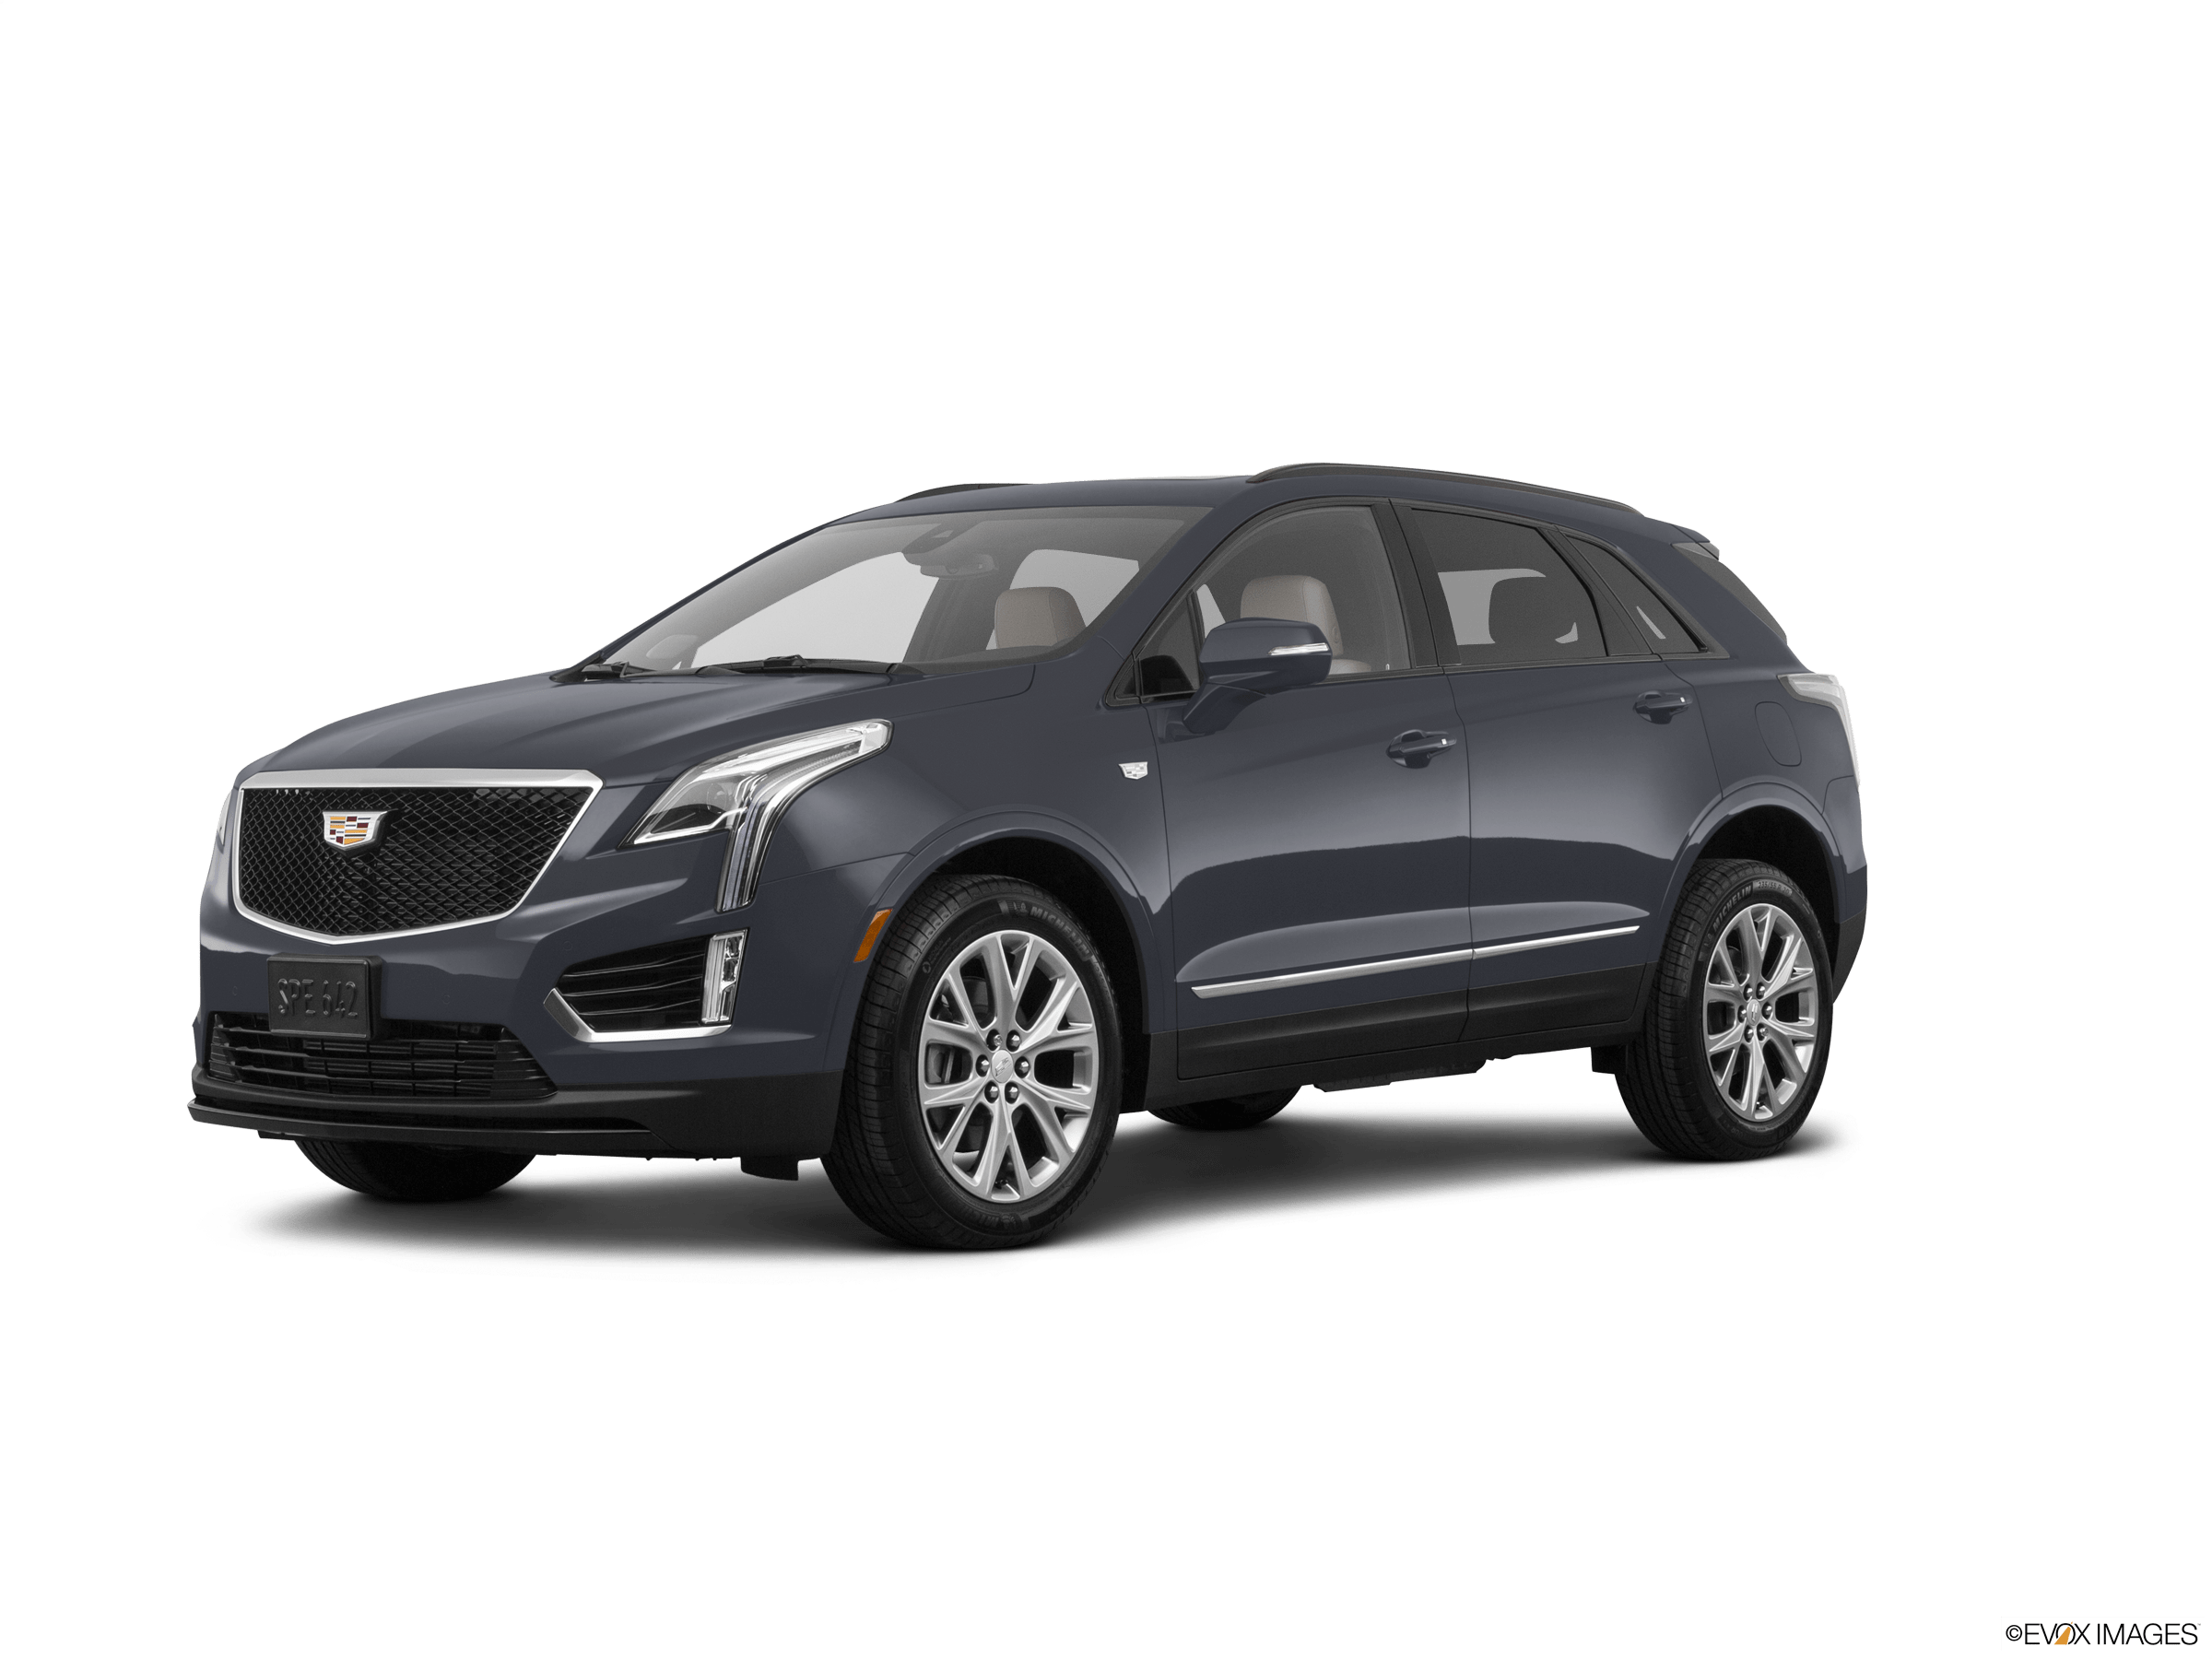 Lease 2021 Cadillac XT5 in New York, New Jersey, Pennsylvania